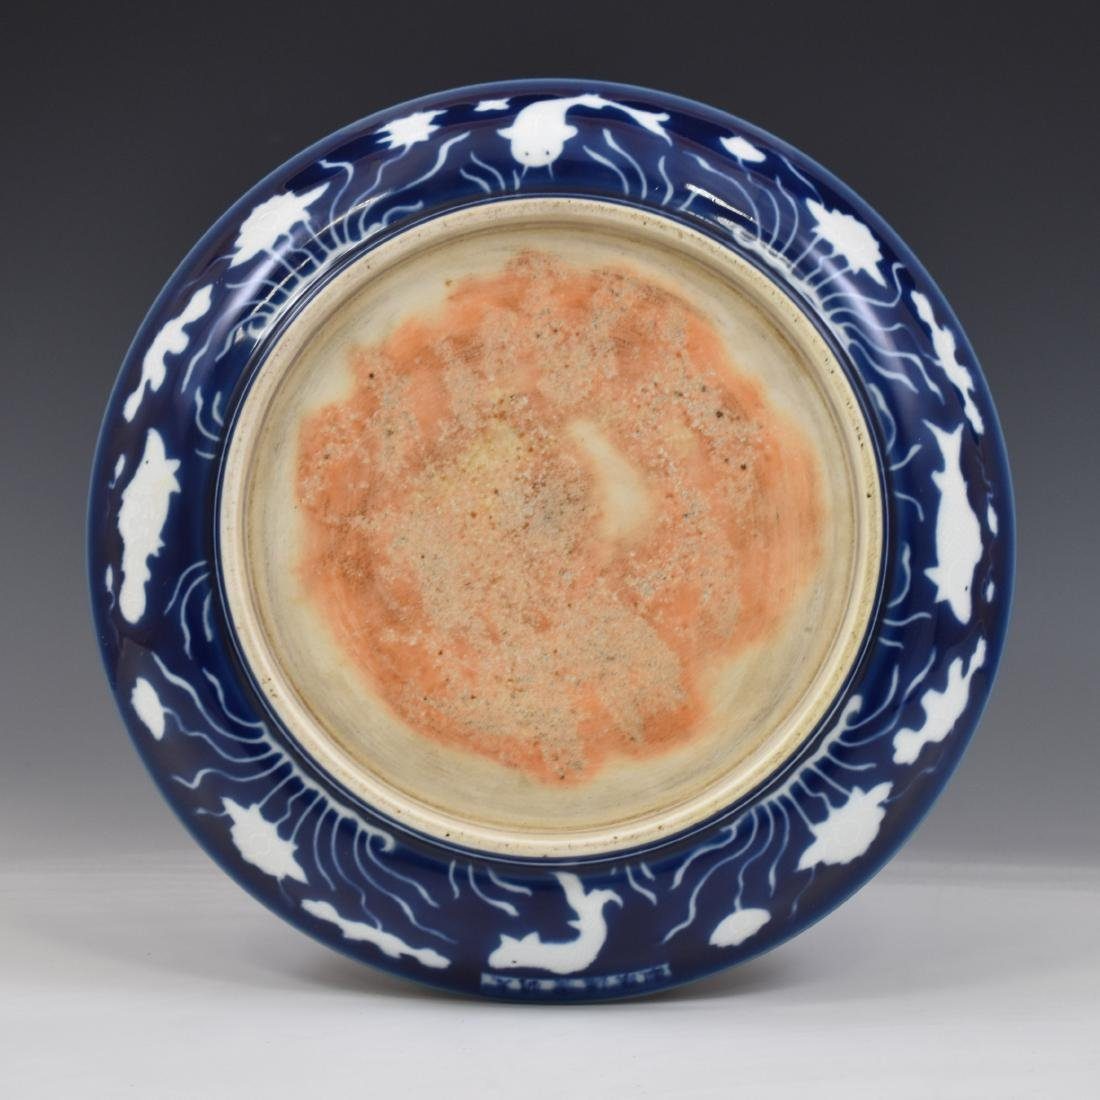 MING XUANDE REVERSED BLUE CARPS PLATE - 2